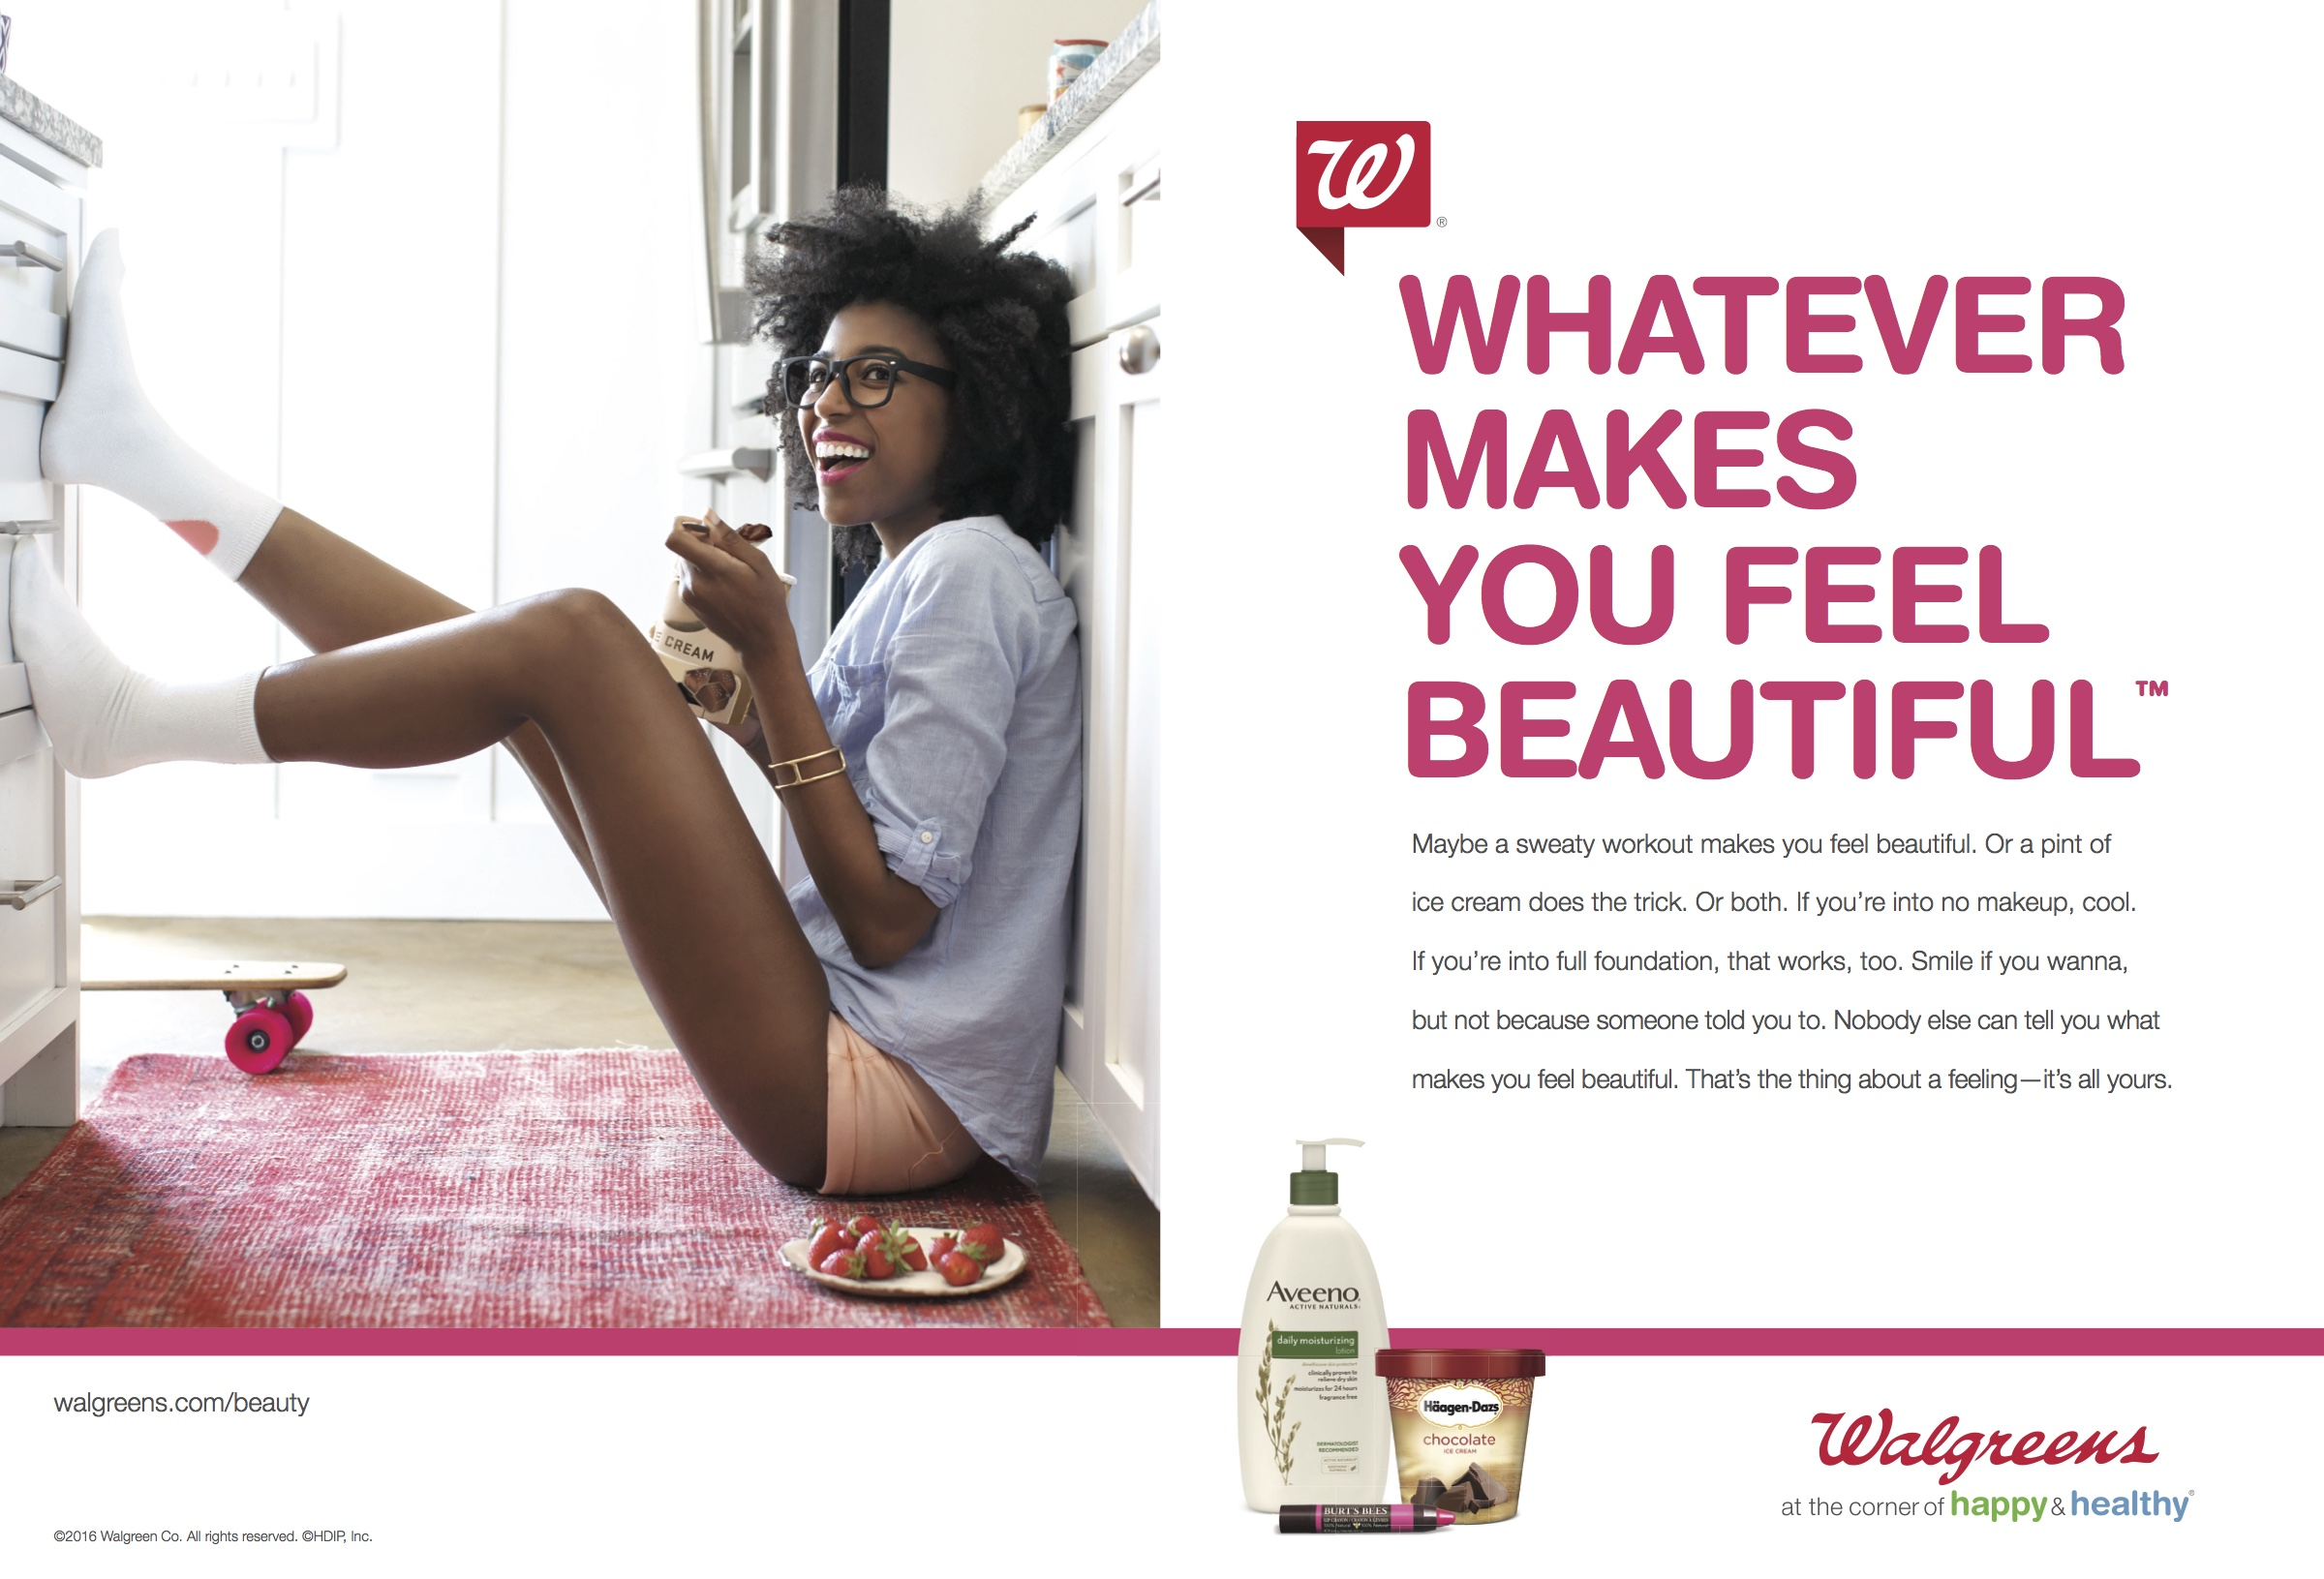 Walgreens Whatever Makes You Feel Beautiful — Kate Griffiths